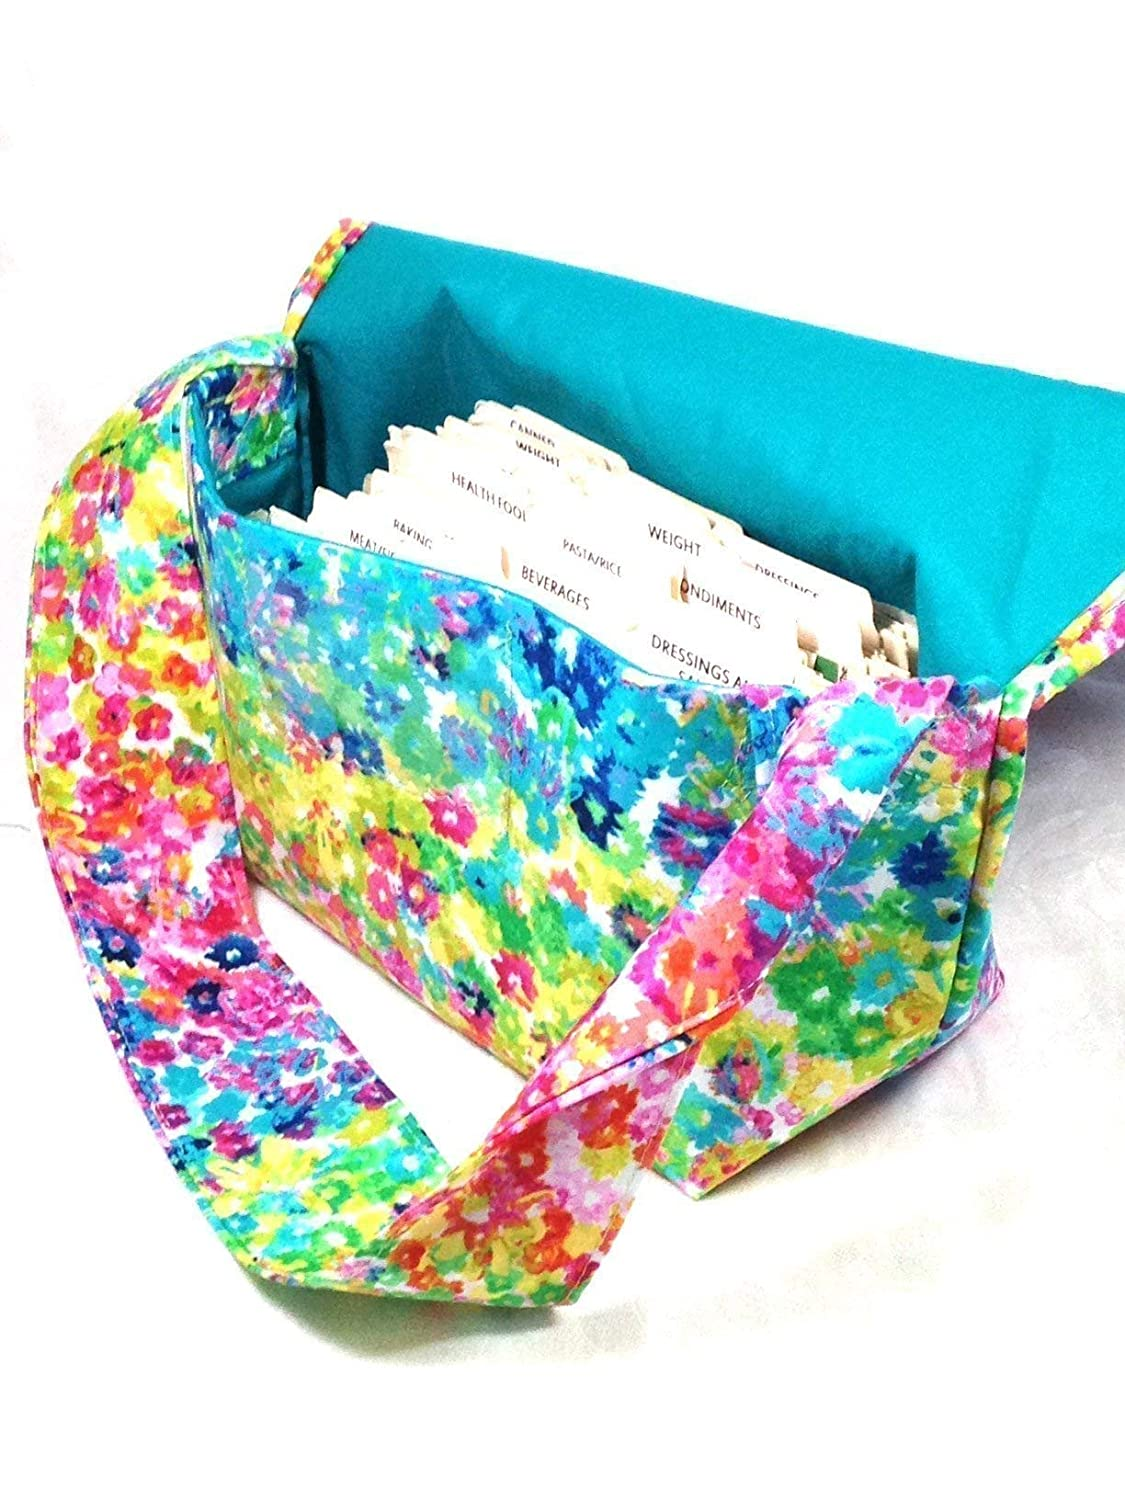 Mega Large Coupon Organizer Floral Watercolor Fabric